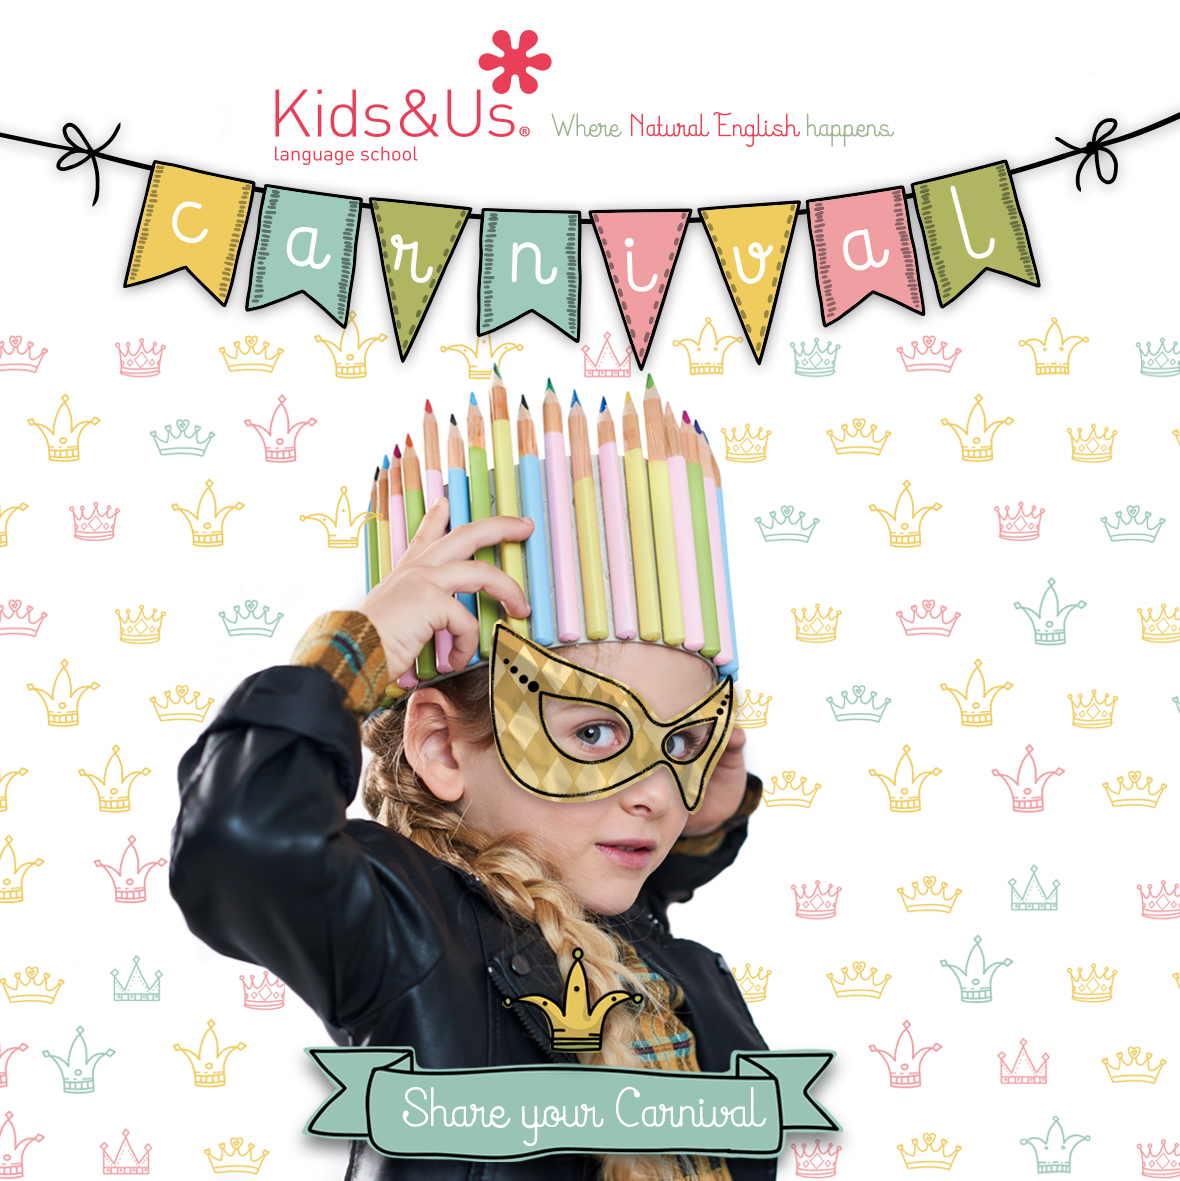 Carnival time at Kids&Us!